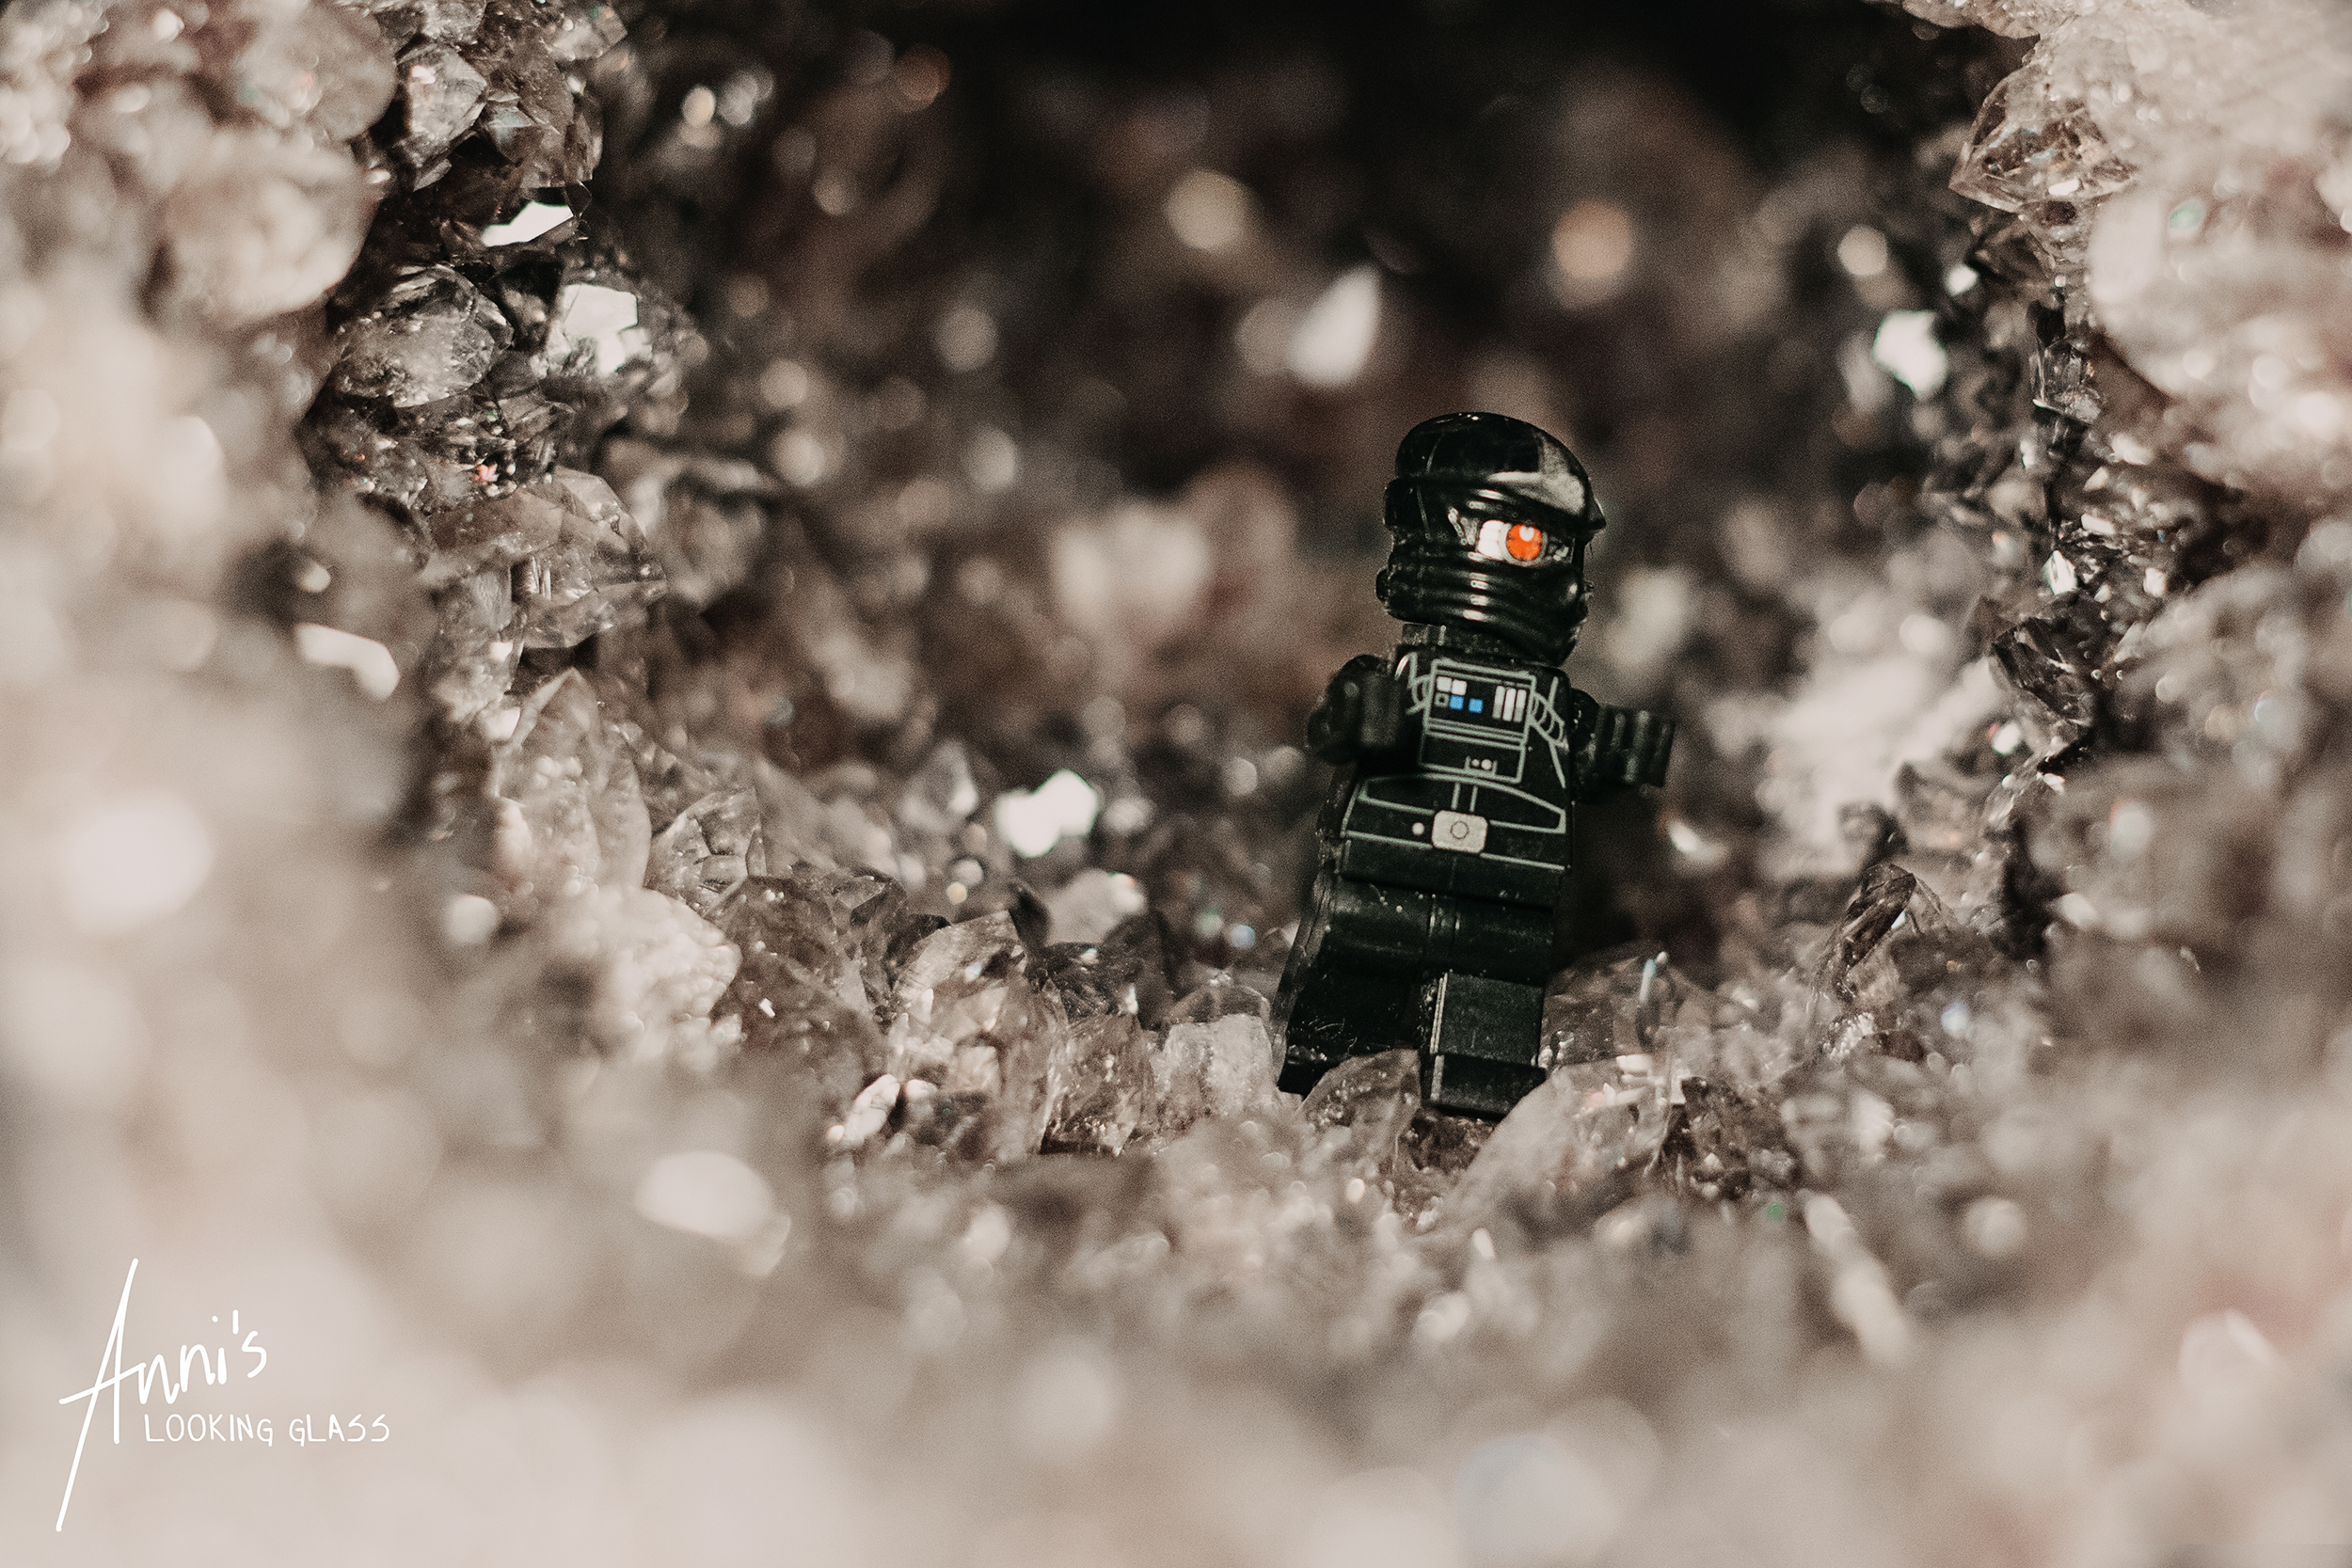 A Lego figure photographed inside a big crystal